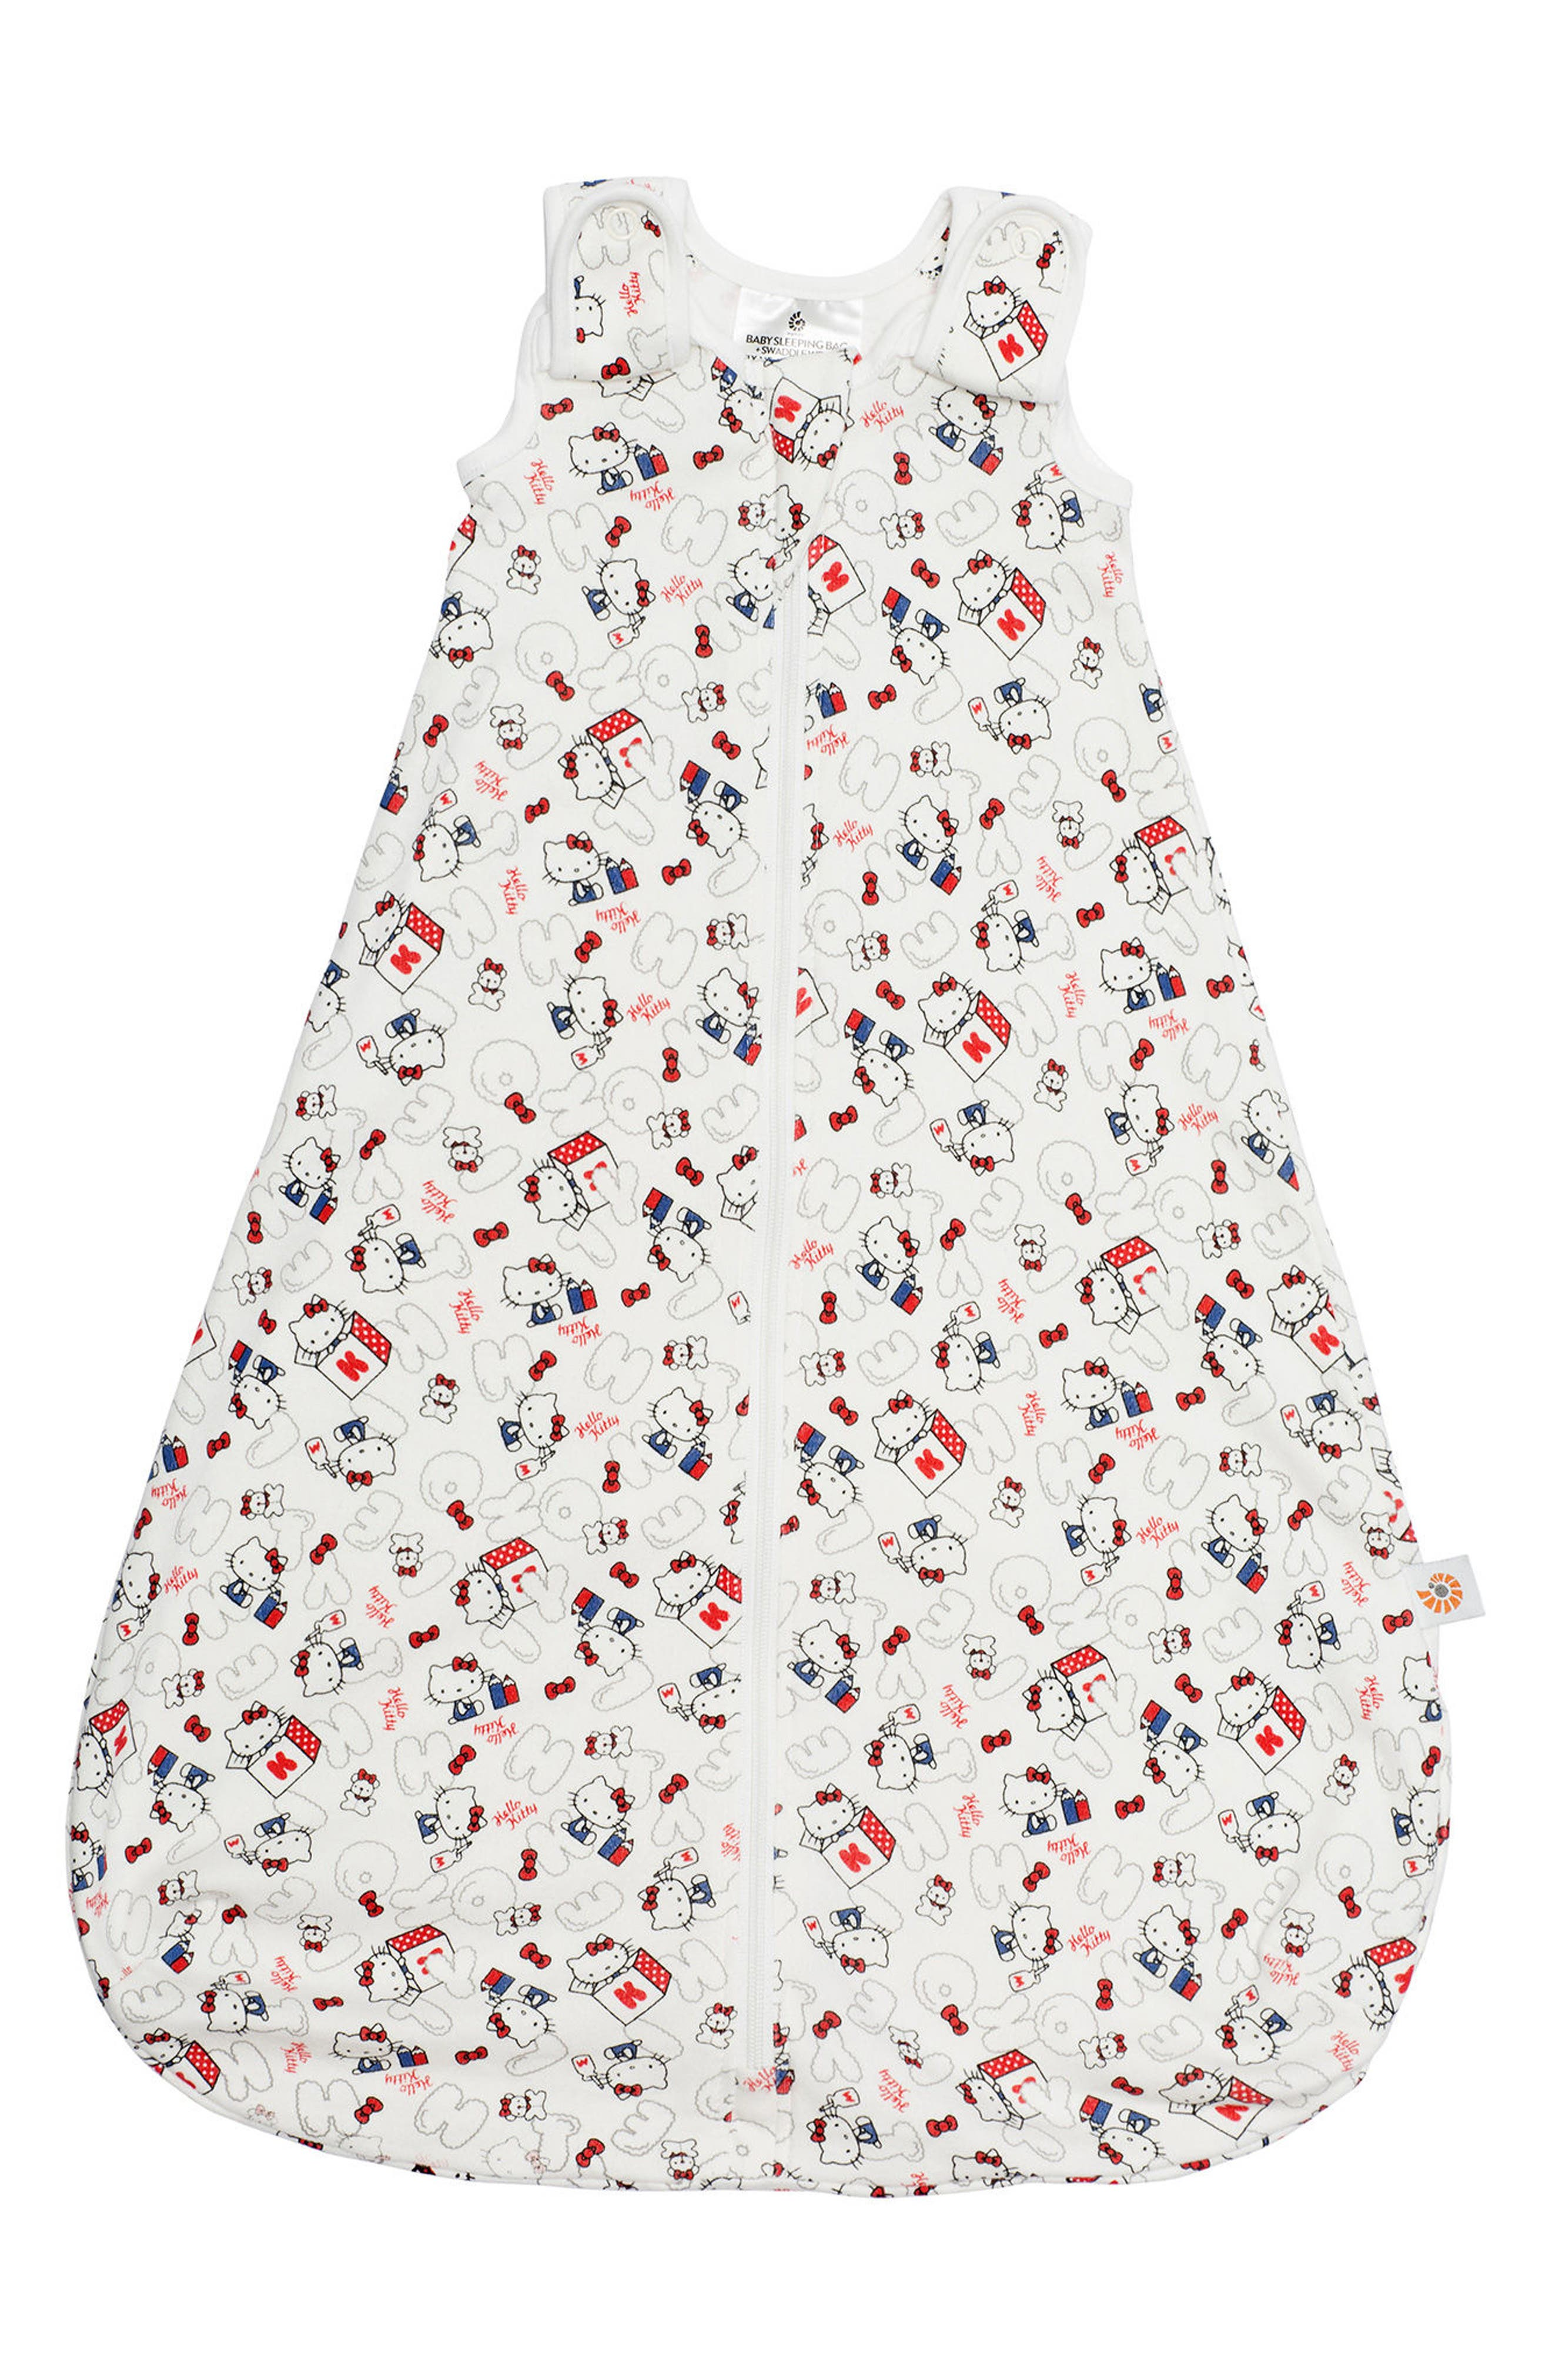 ERGObaby Limited Edition Hello Kitty® Wearable Blanket